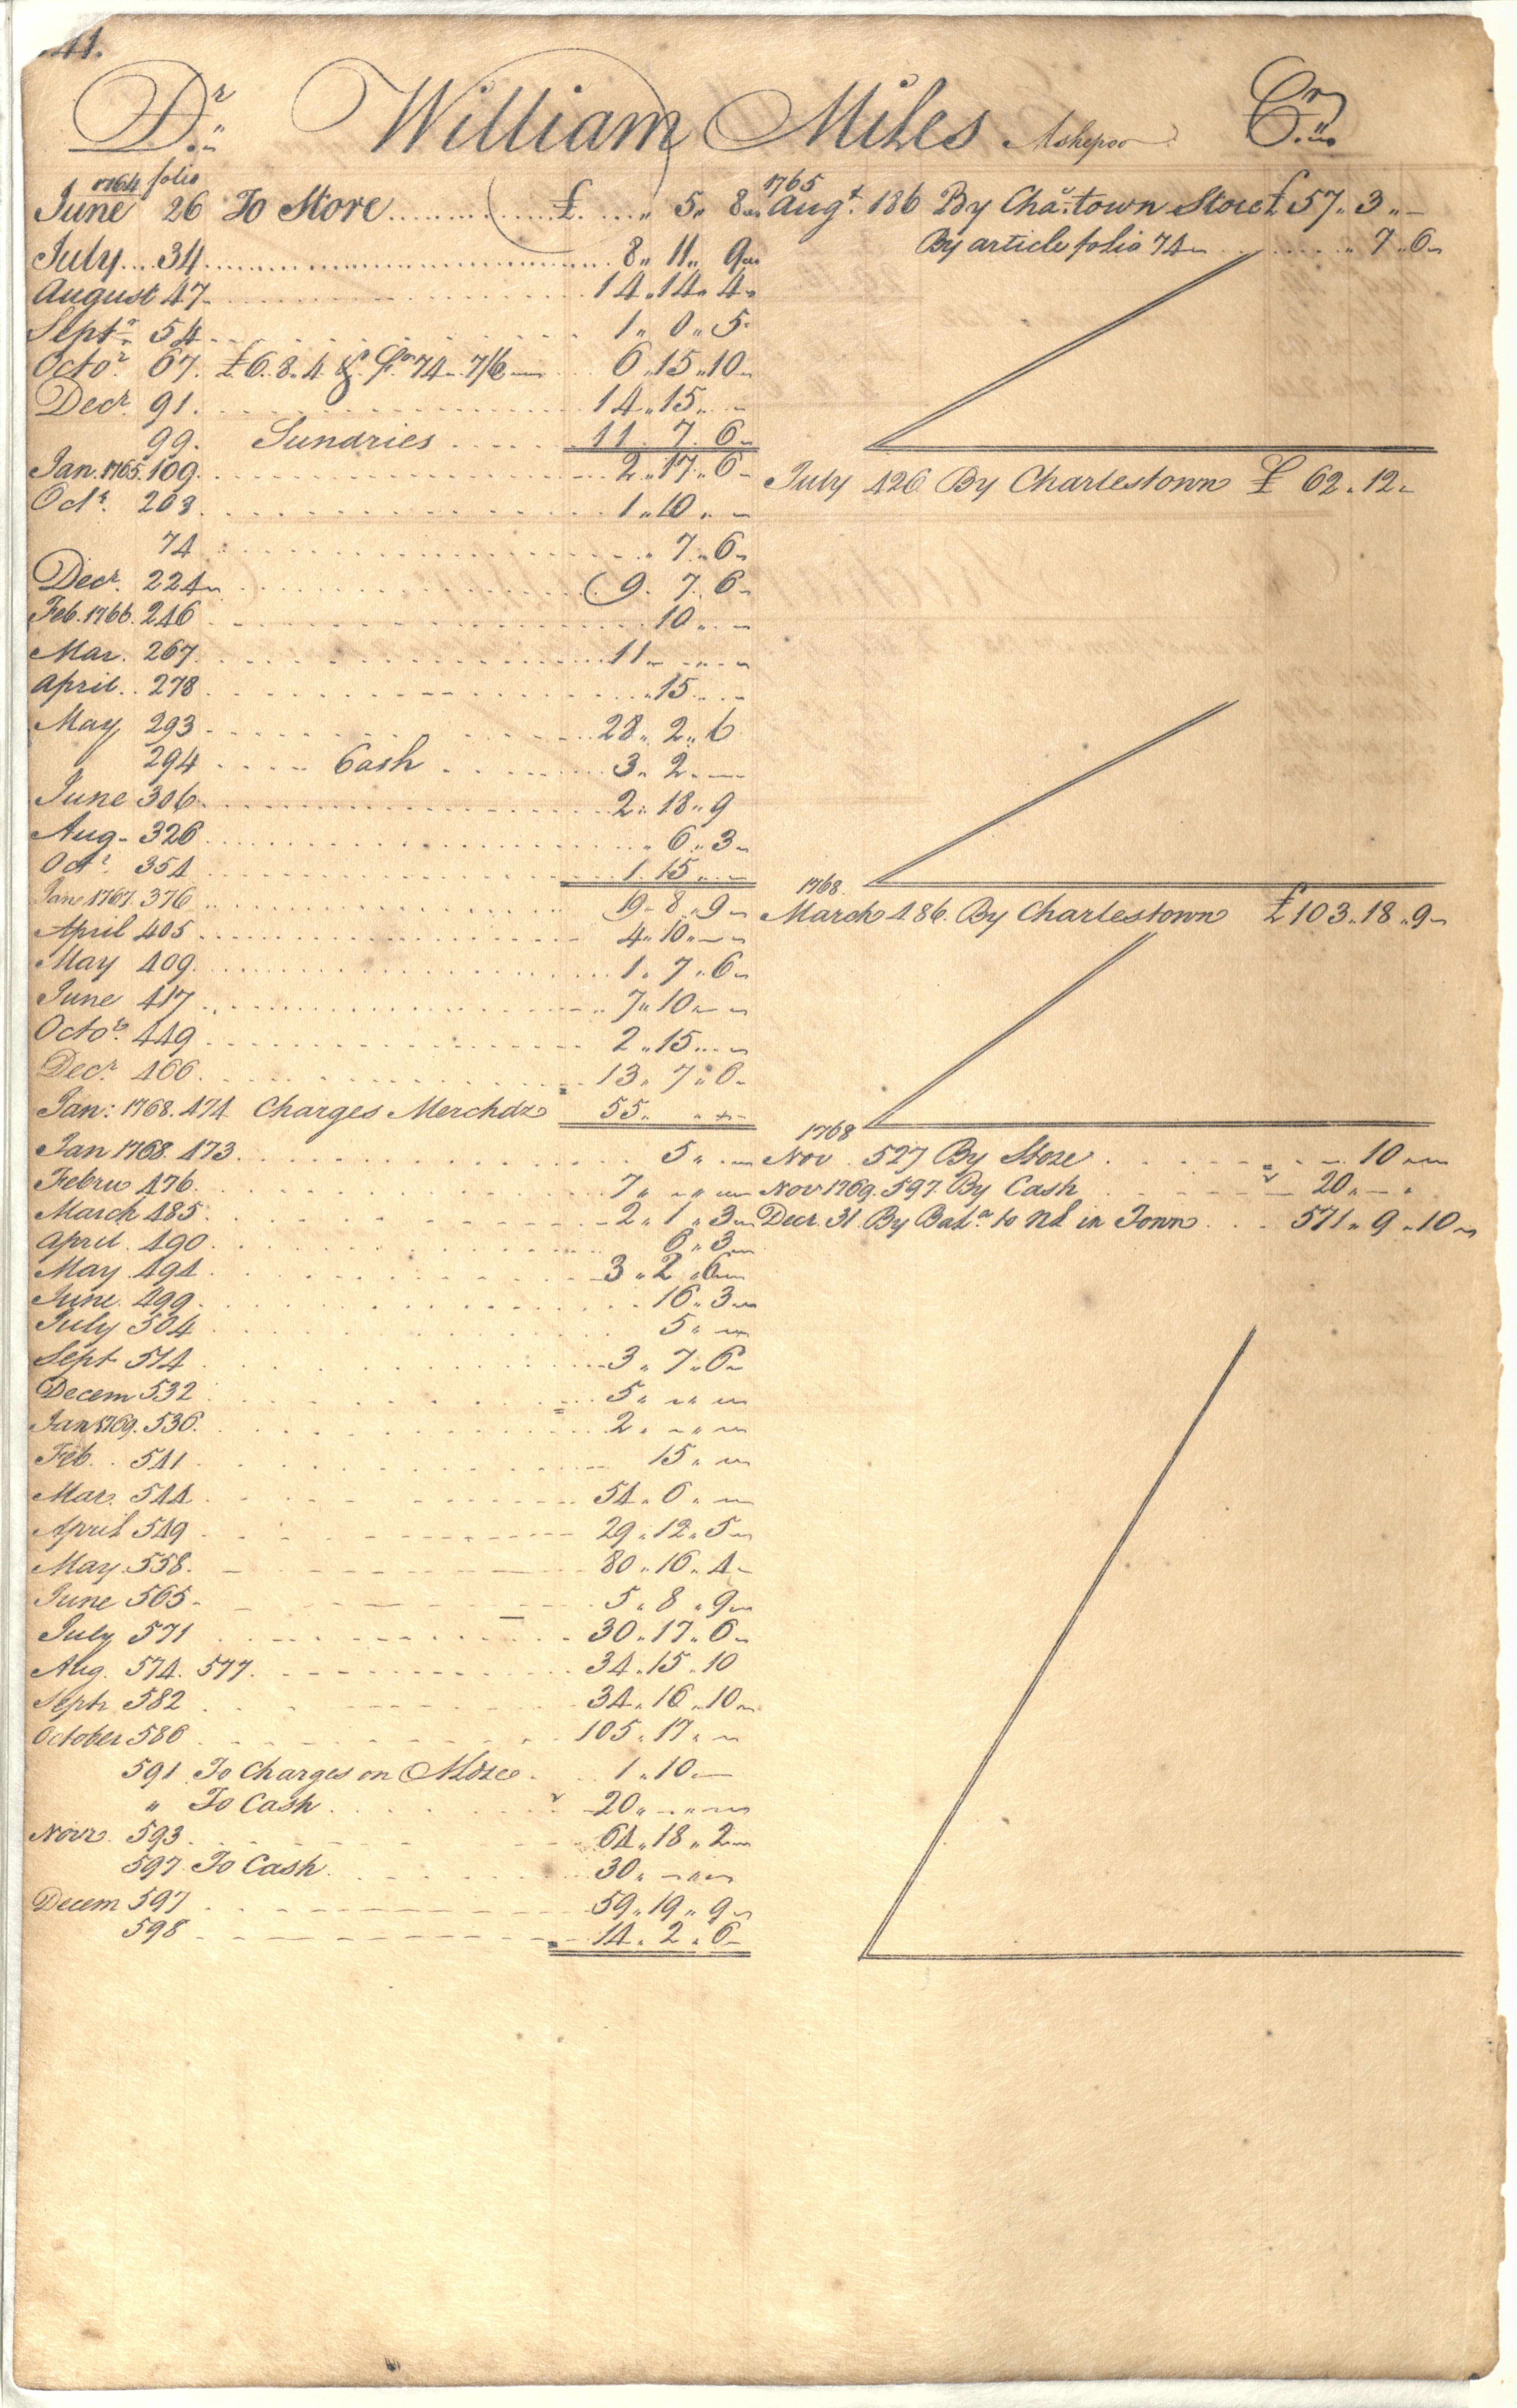 Plowden Weston's Business Ledger, page 141